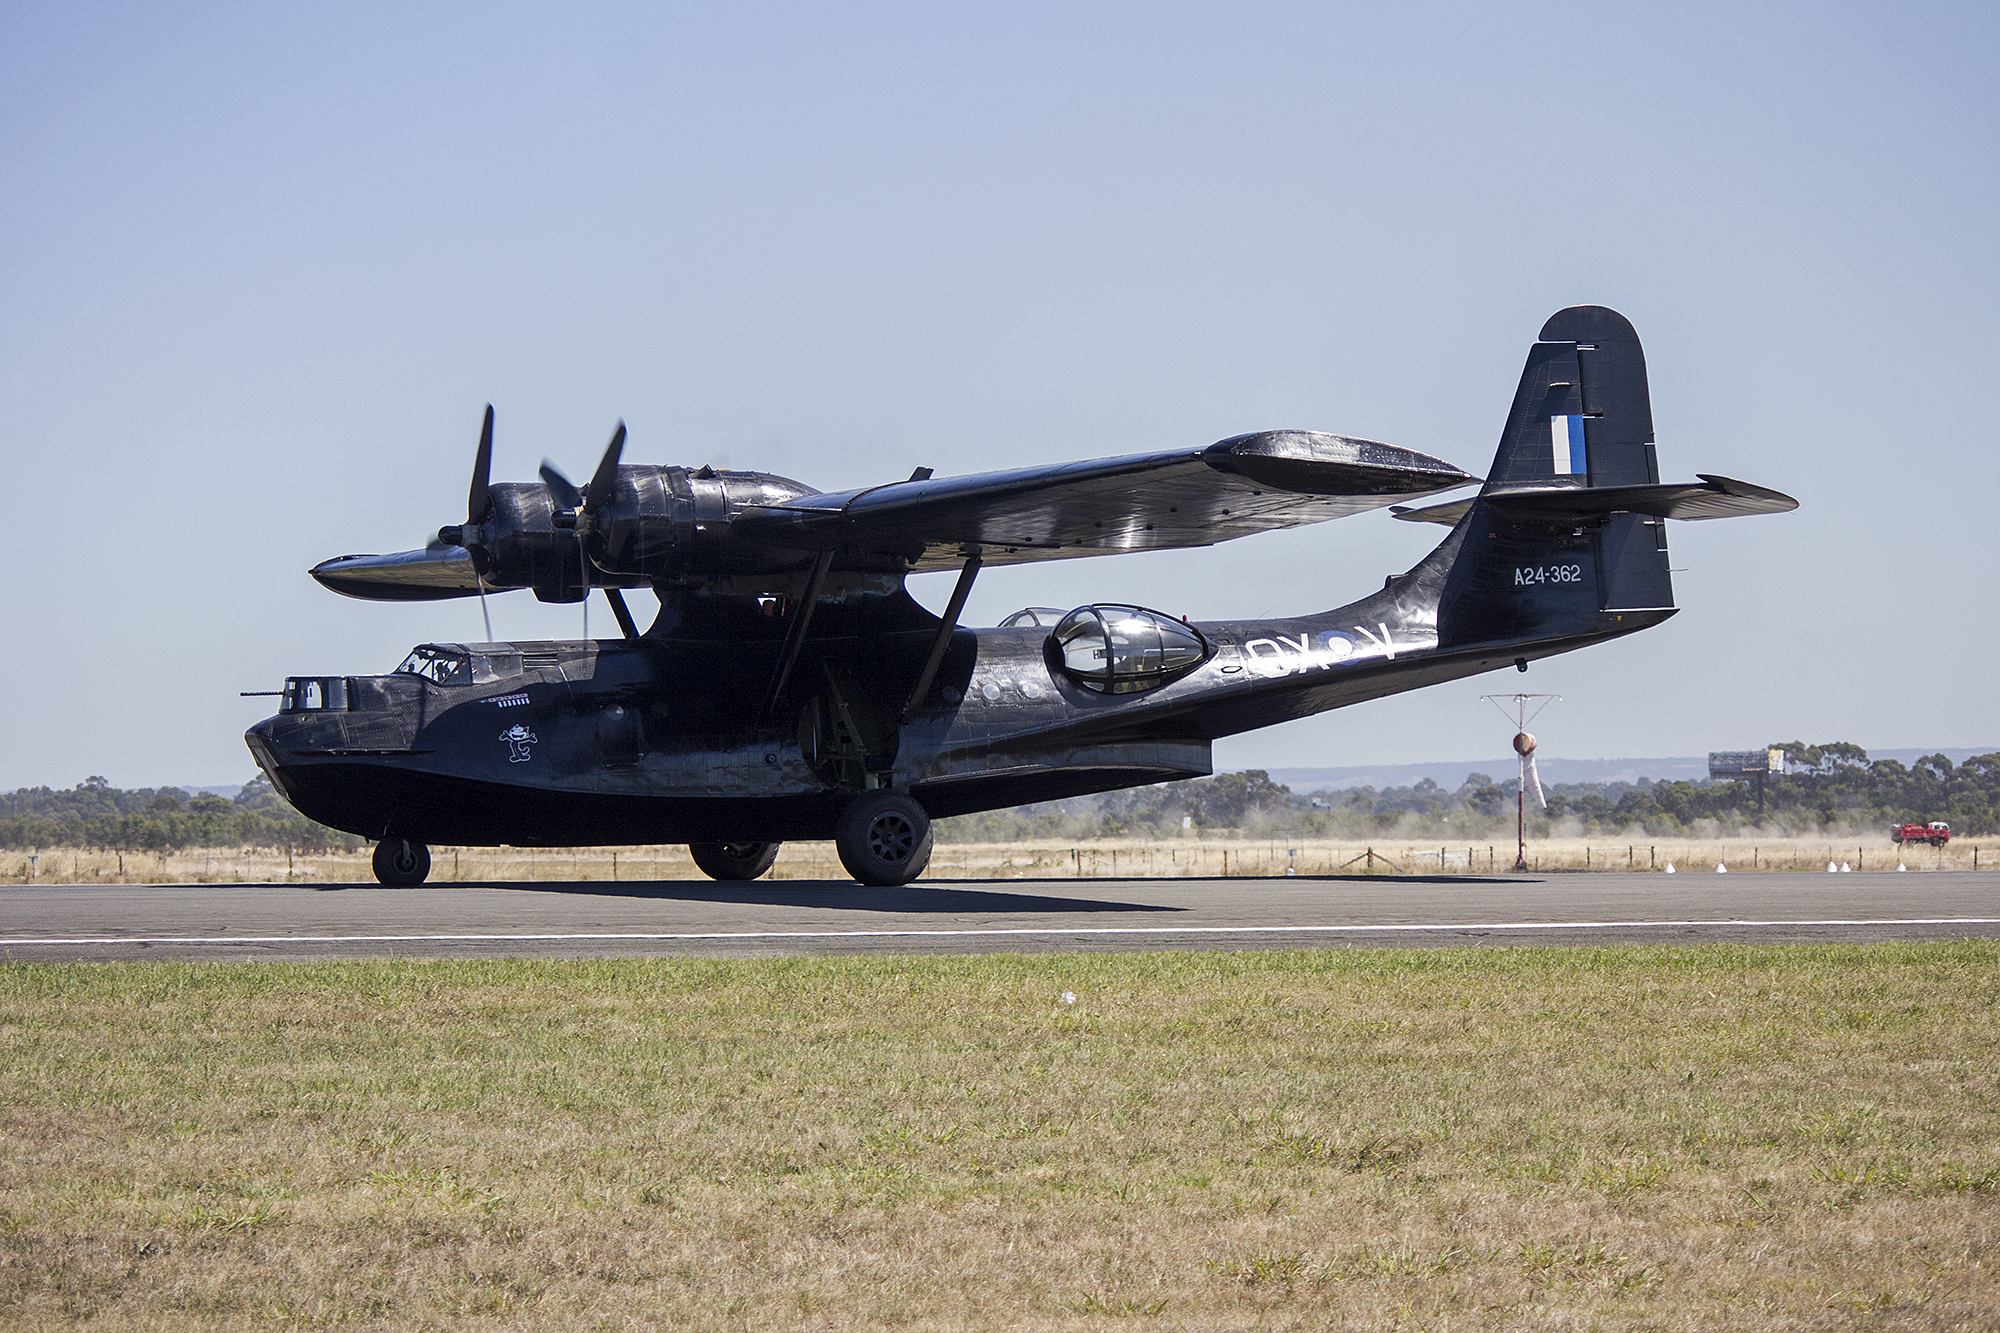 Consolidated Pby Catalina Black Cat